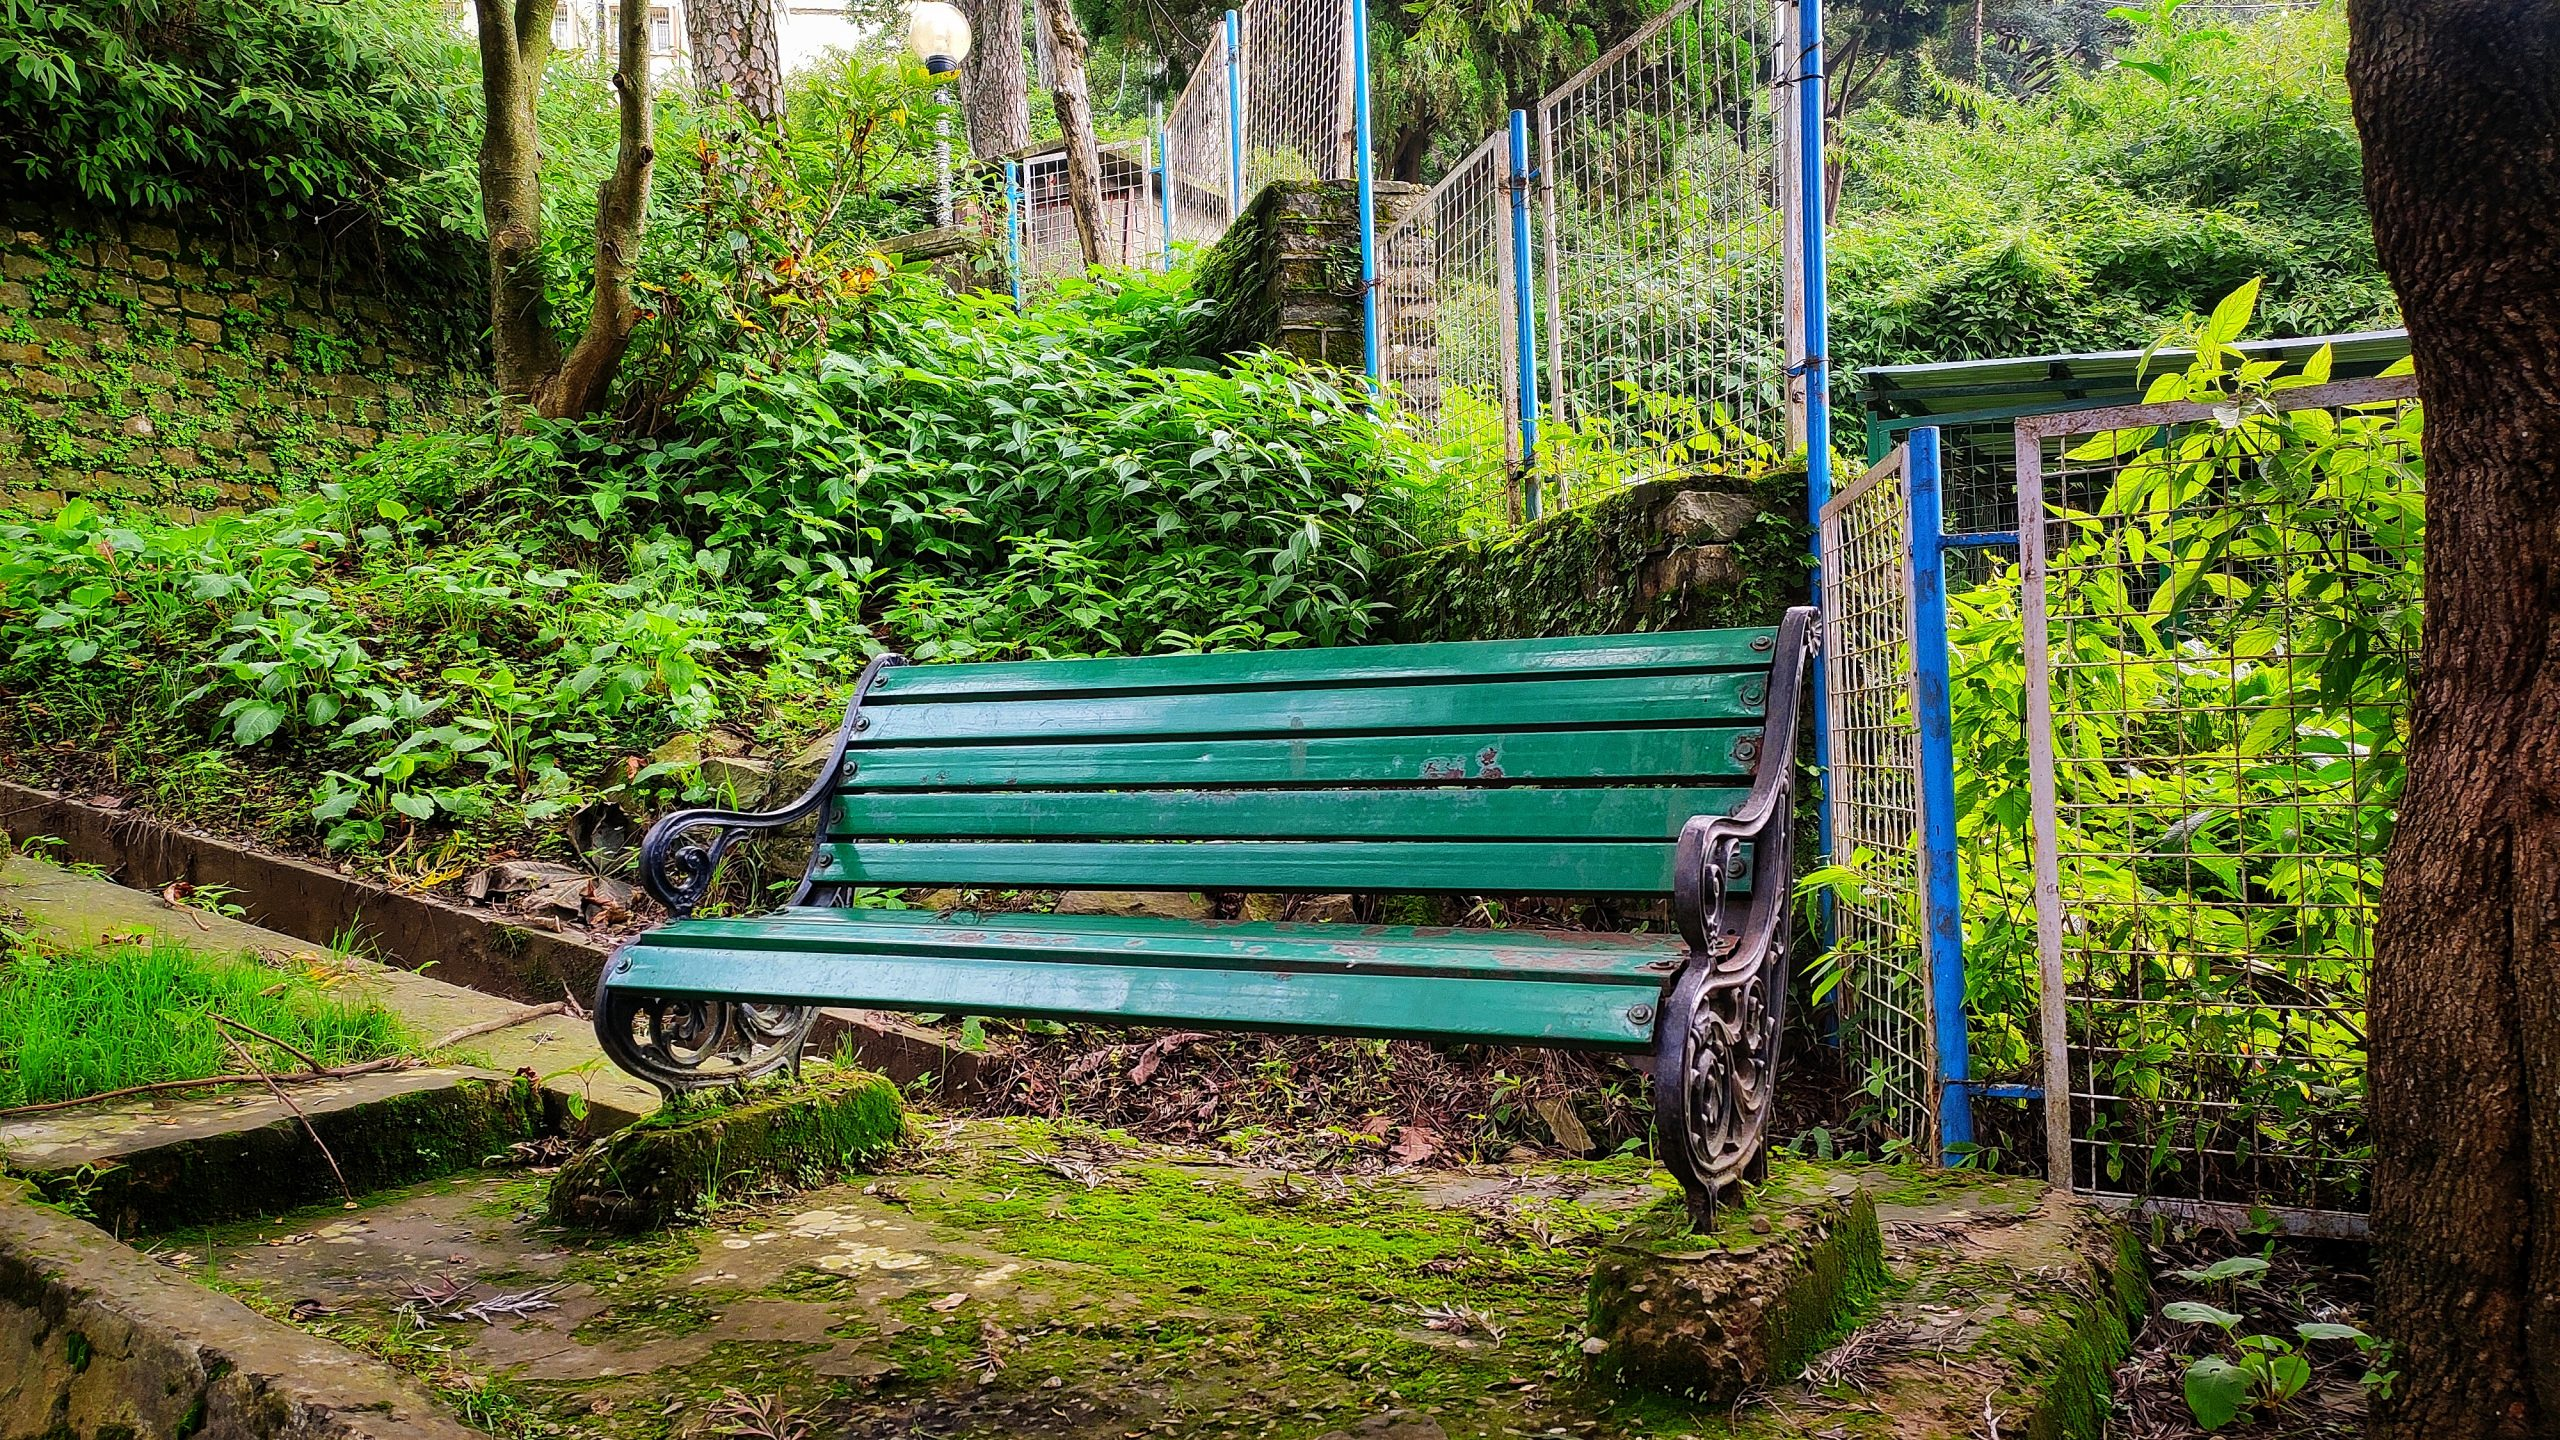 A bench in a public park